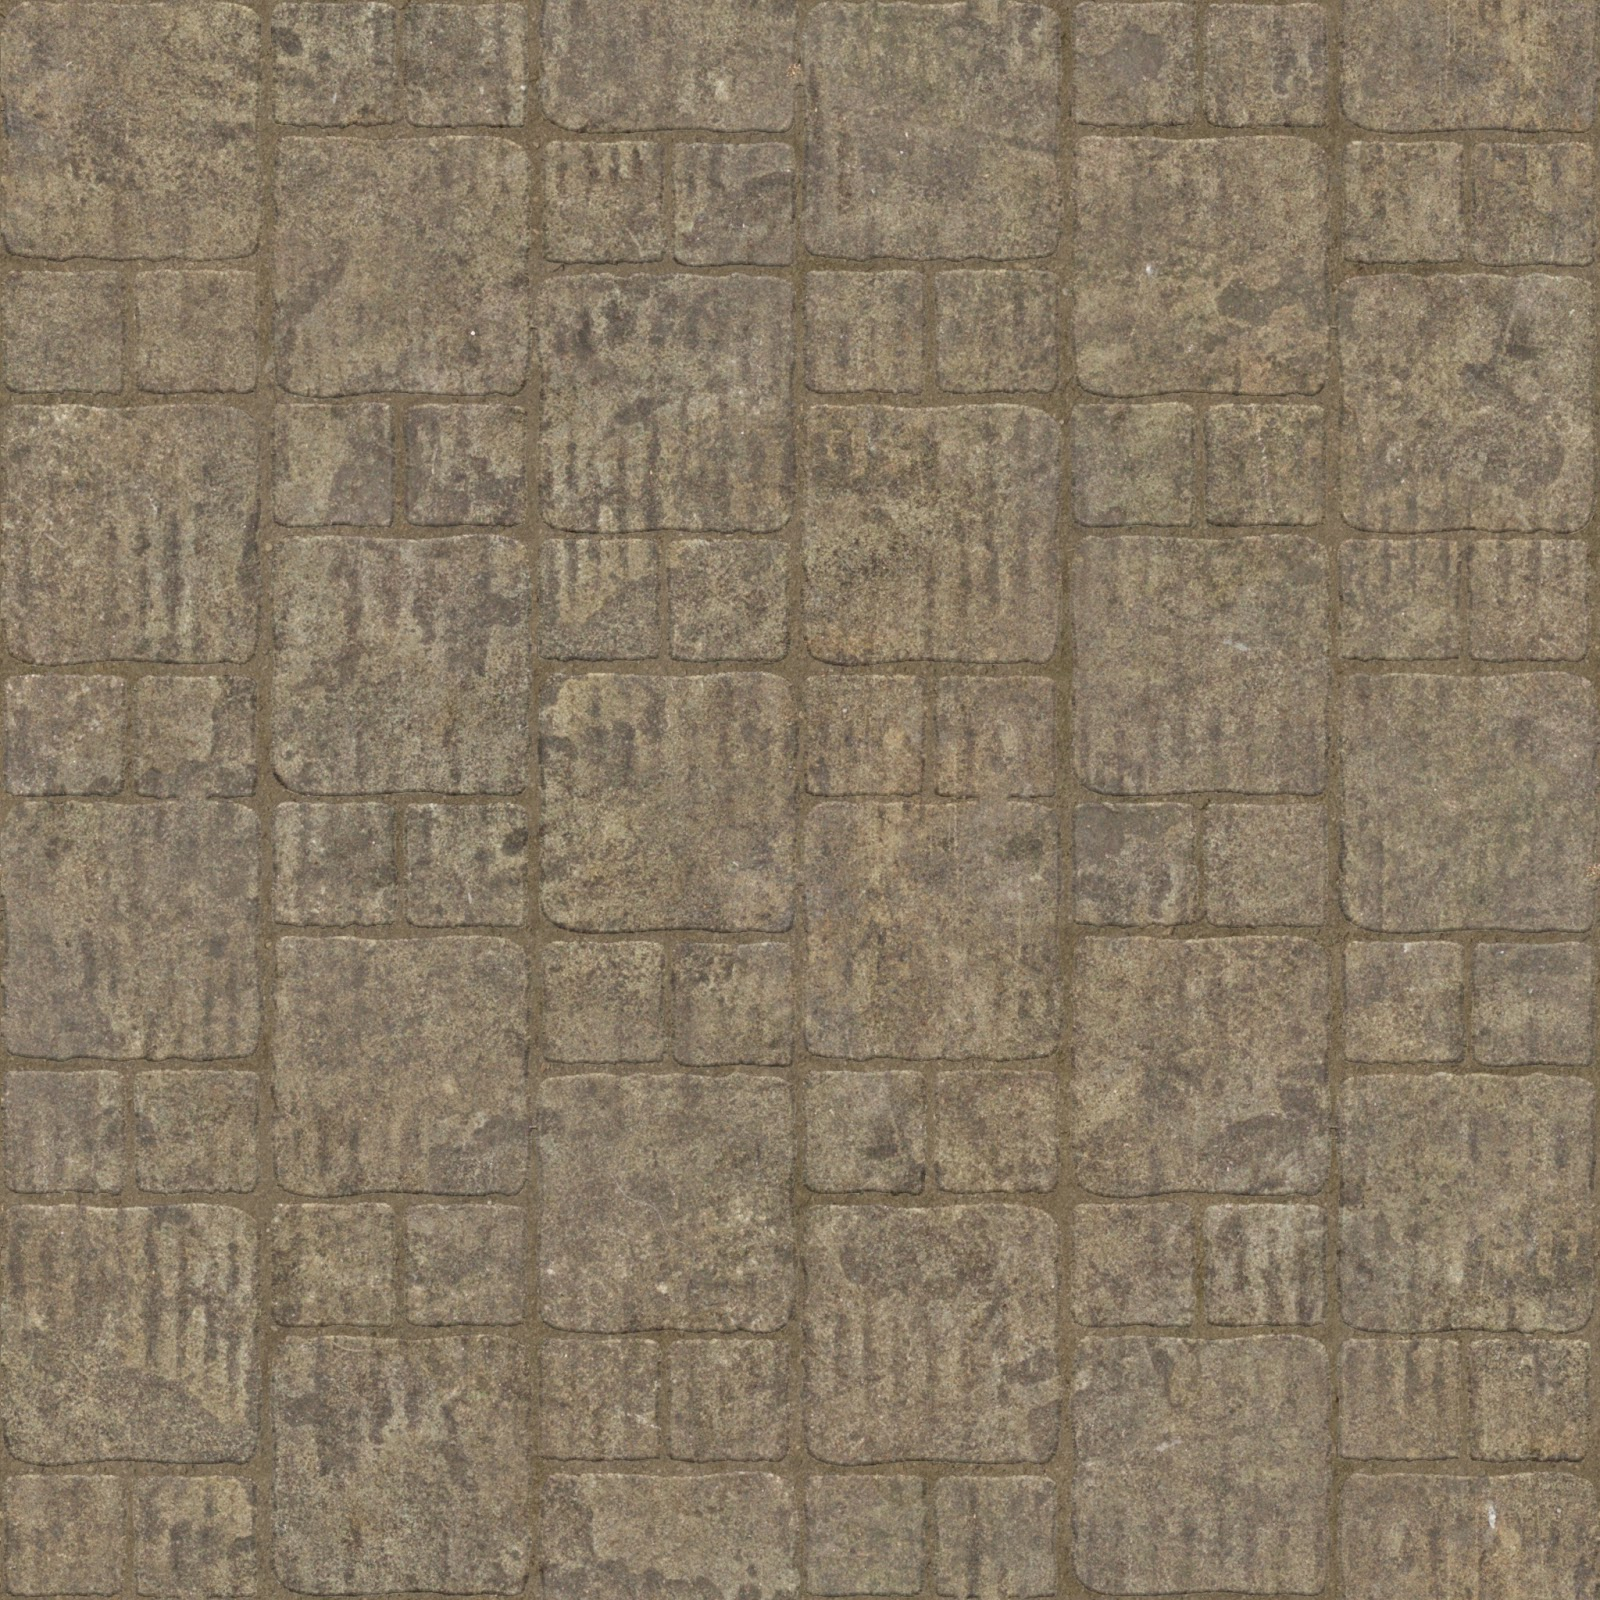 Brick stone floor tiles seamless texture 2048x2048